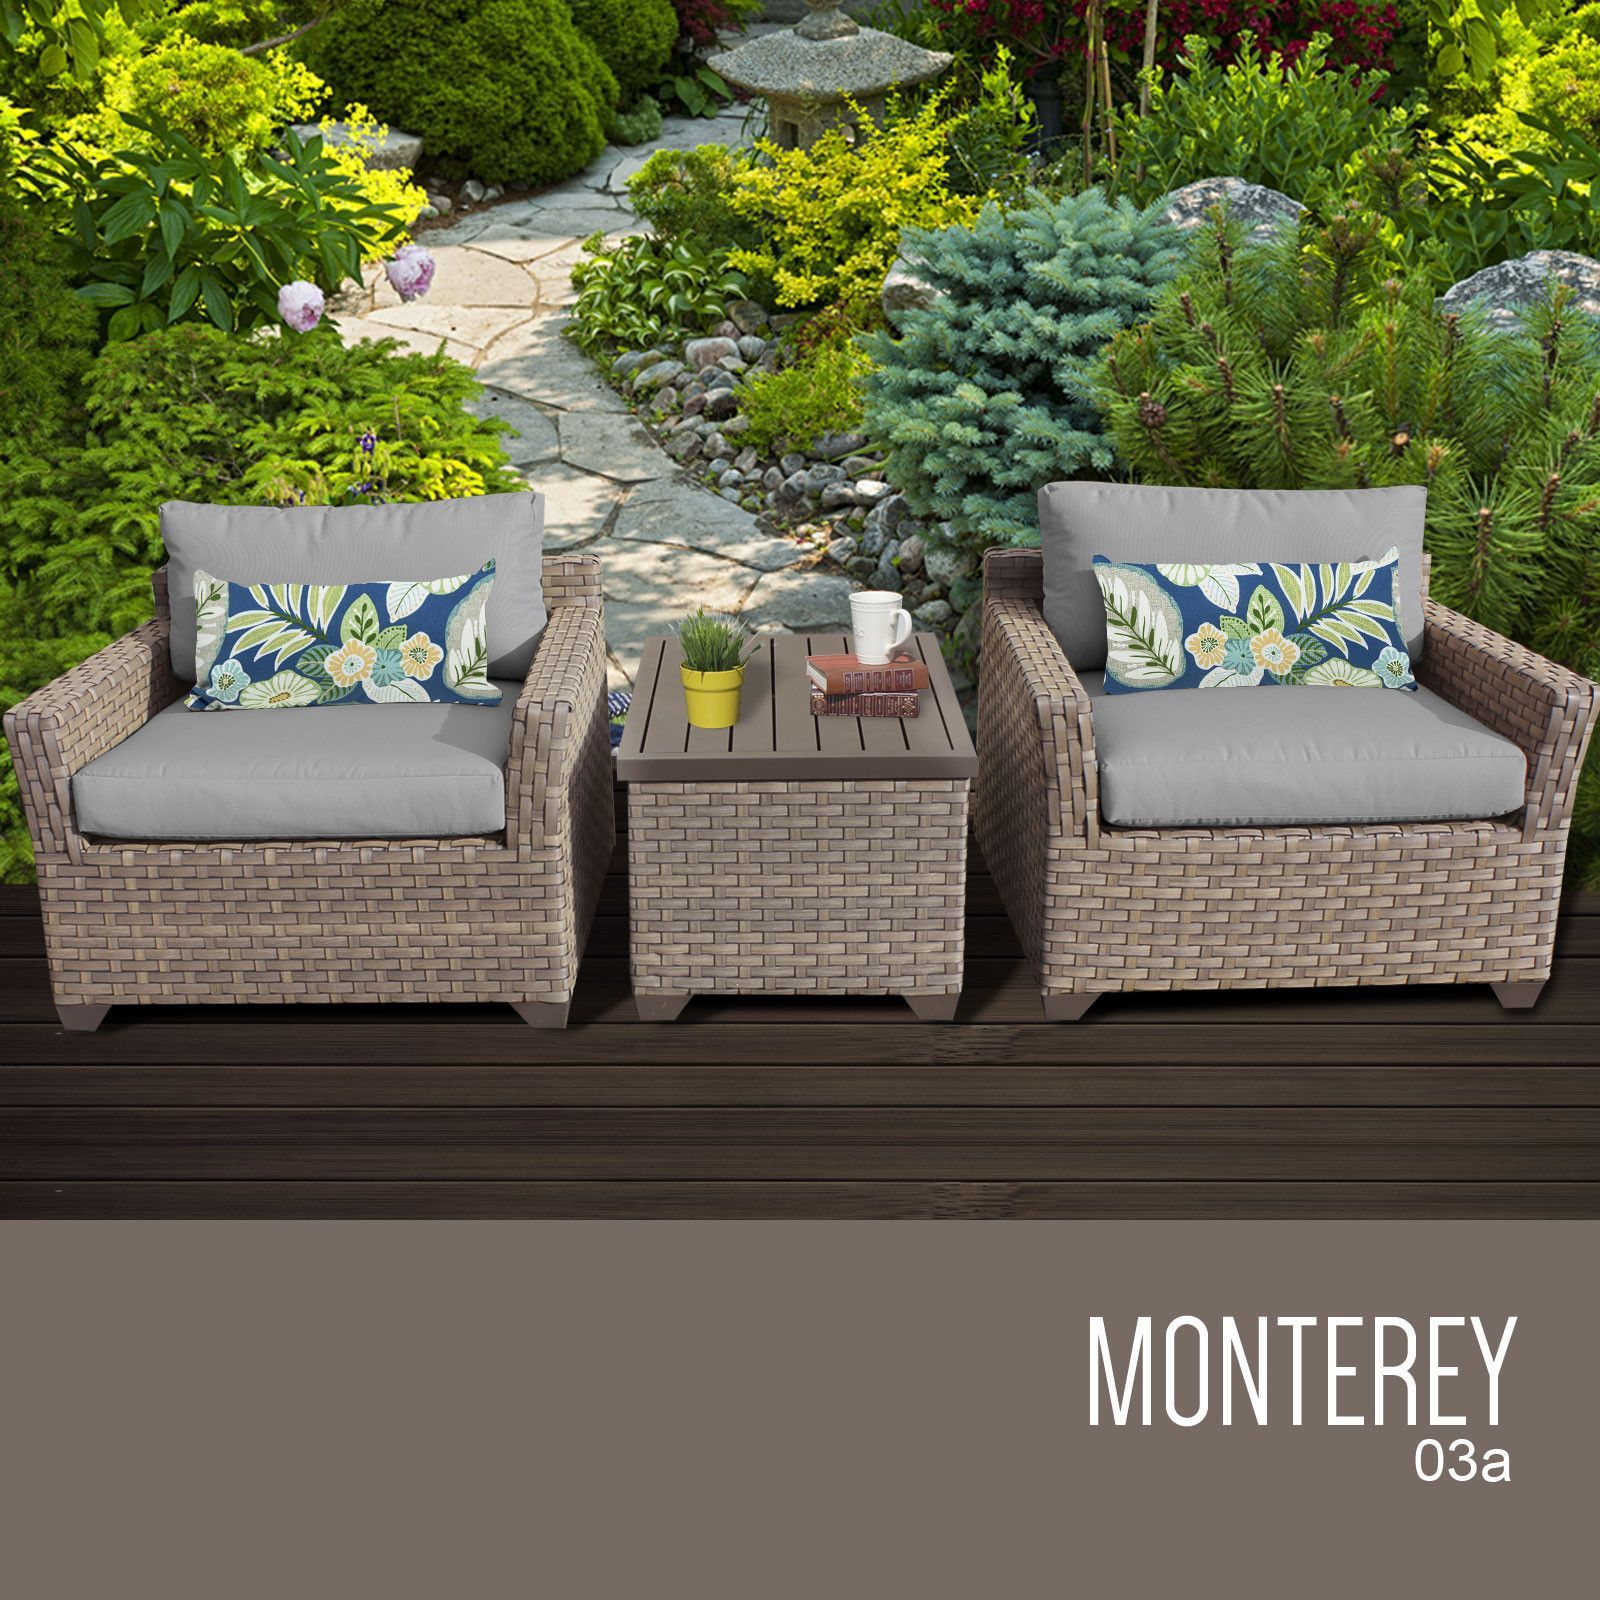 Monterey 3 Piece Outdoor Wicker Patio Furniture Set 03a at